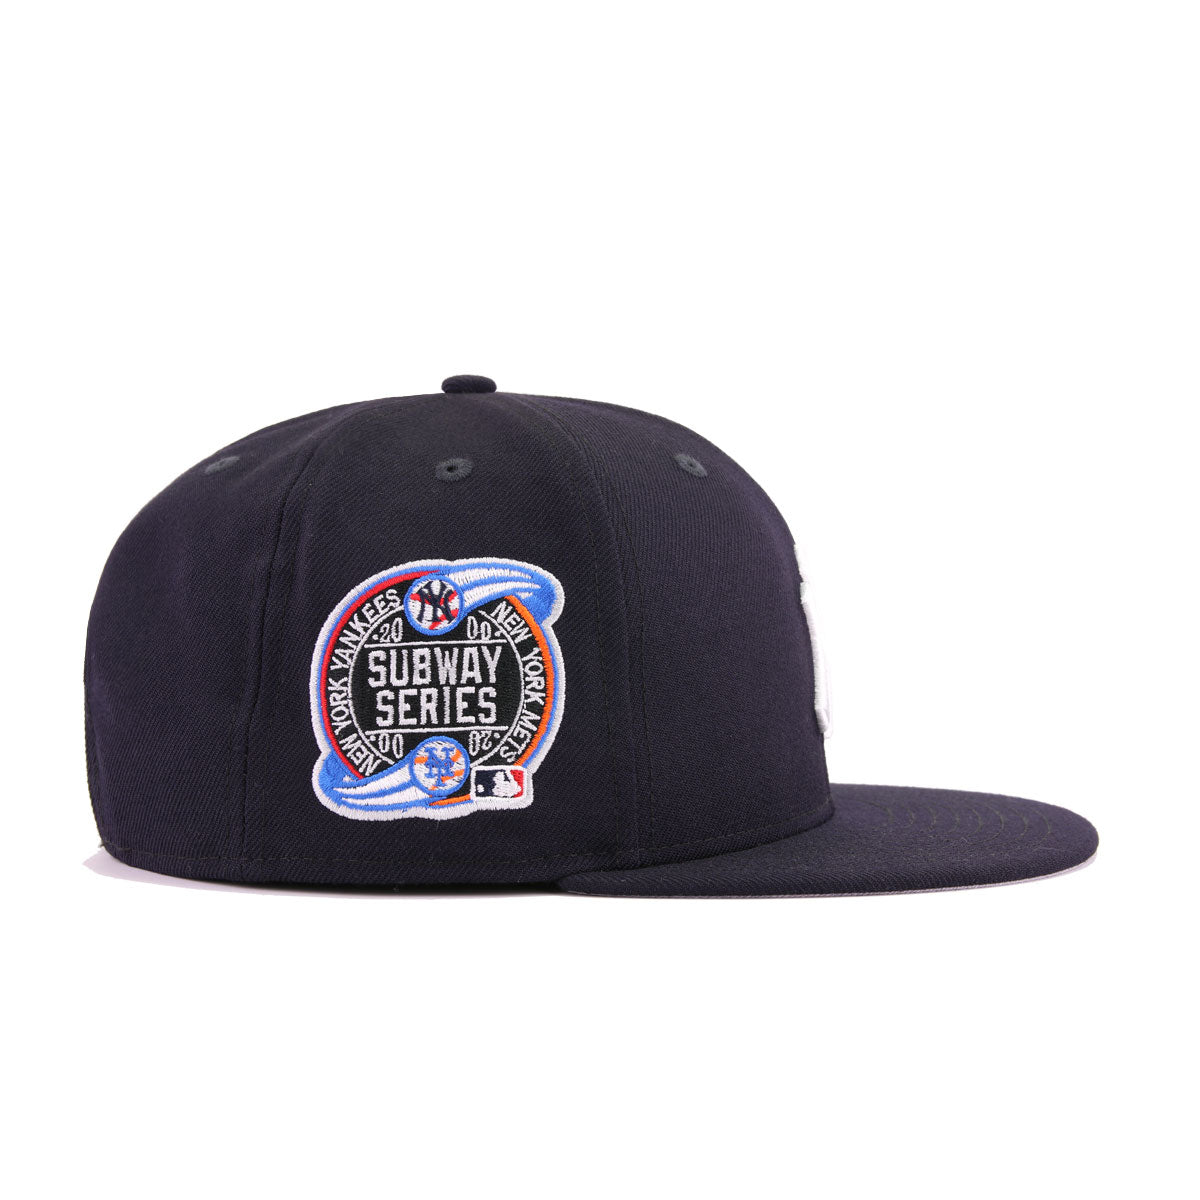 New York Yankees Navy Cooperstown Subway Series New Era 9Fifty Snapback db7c4331000